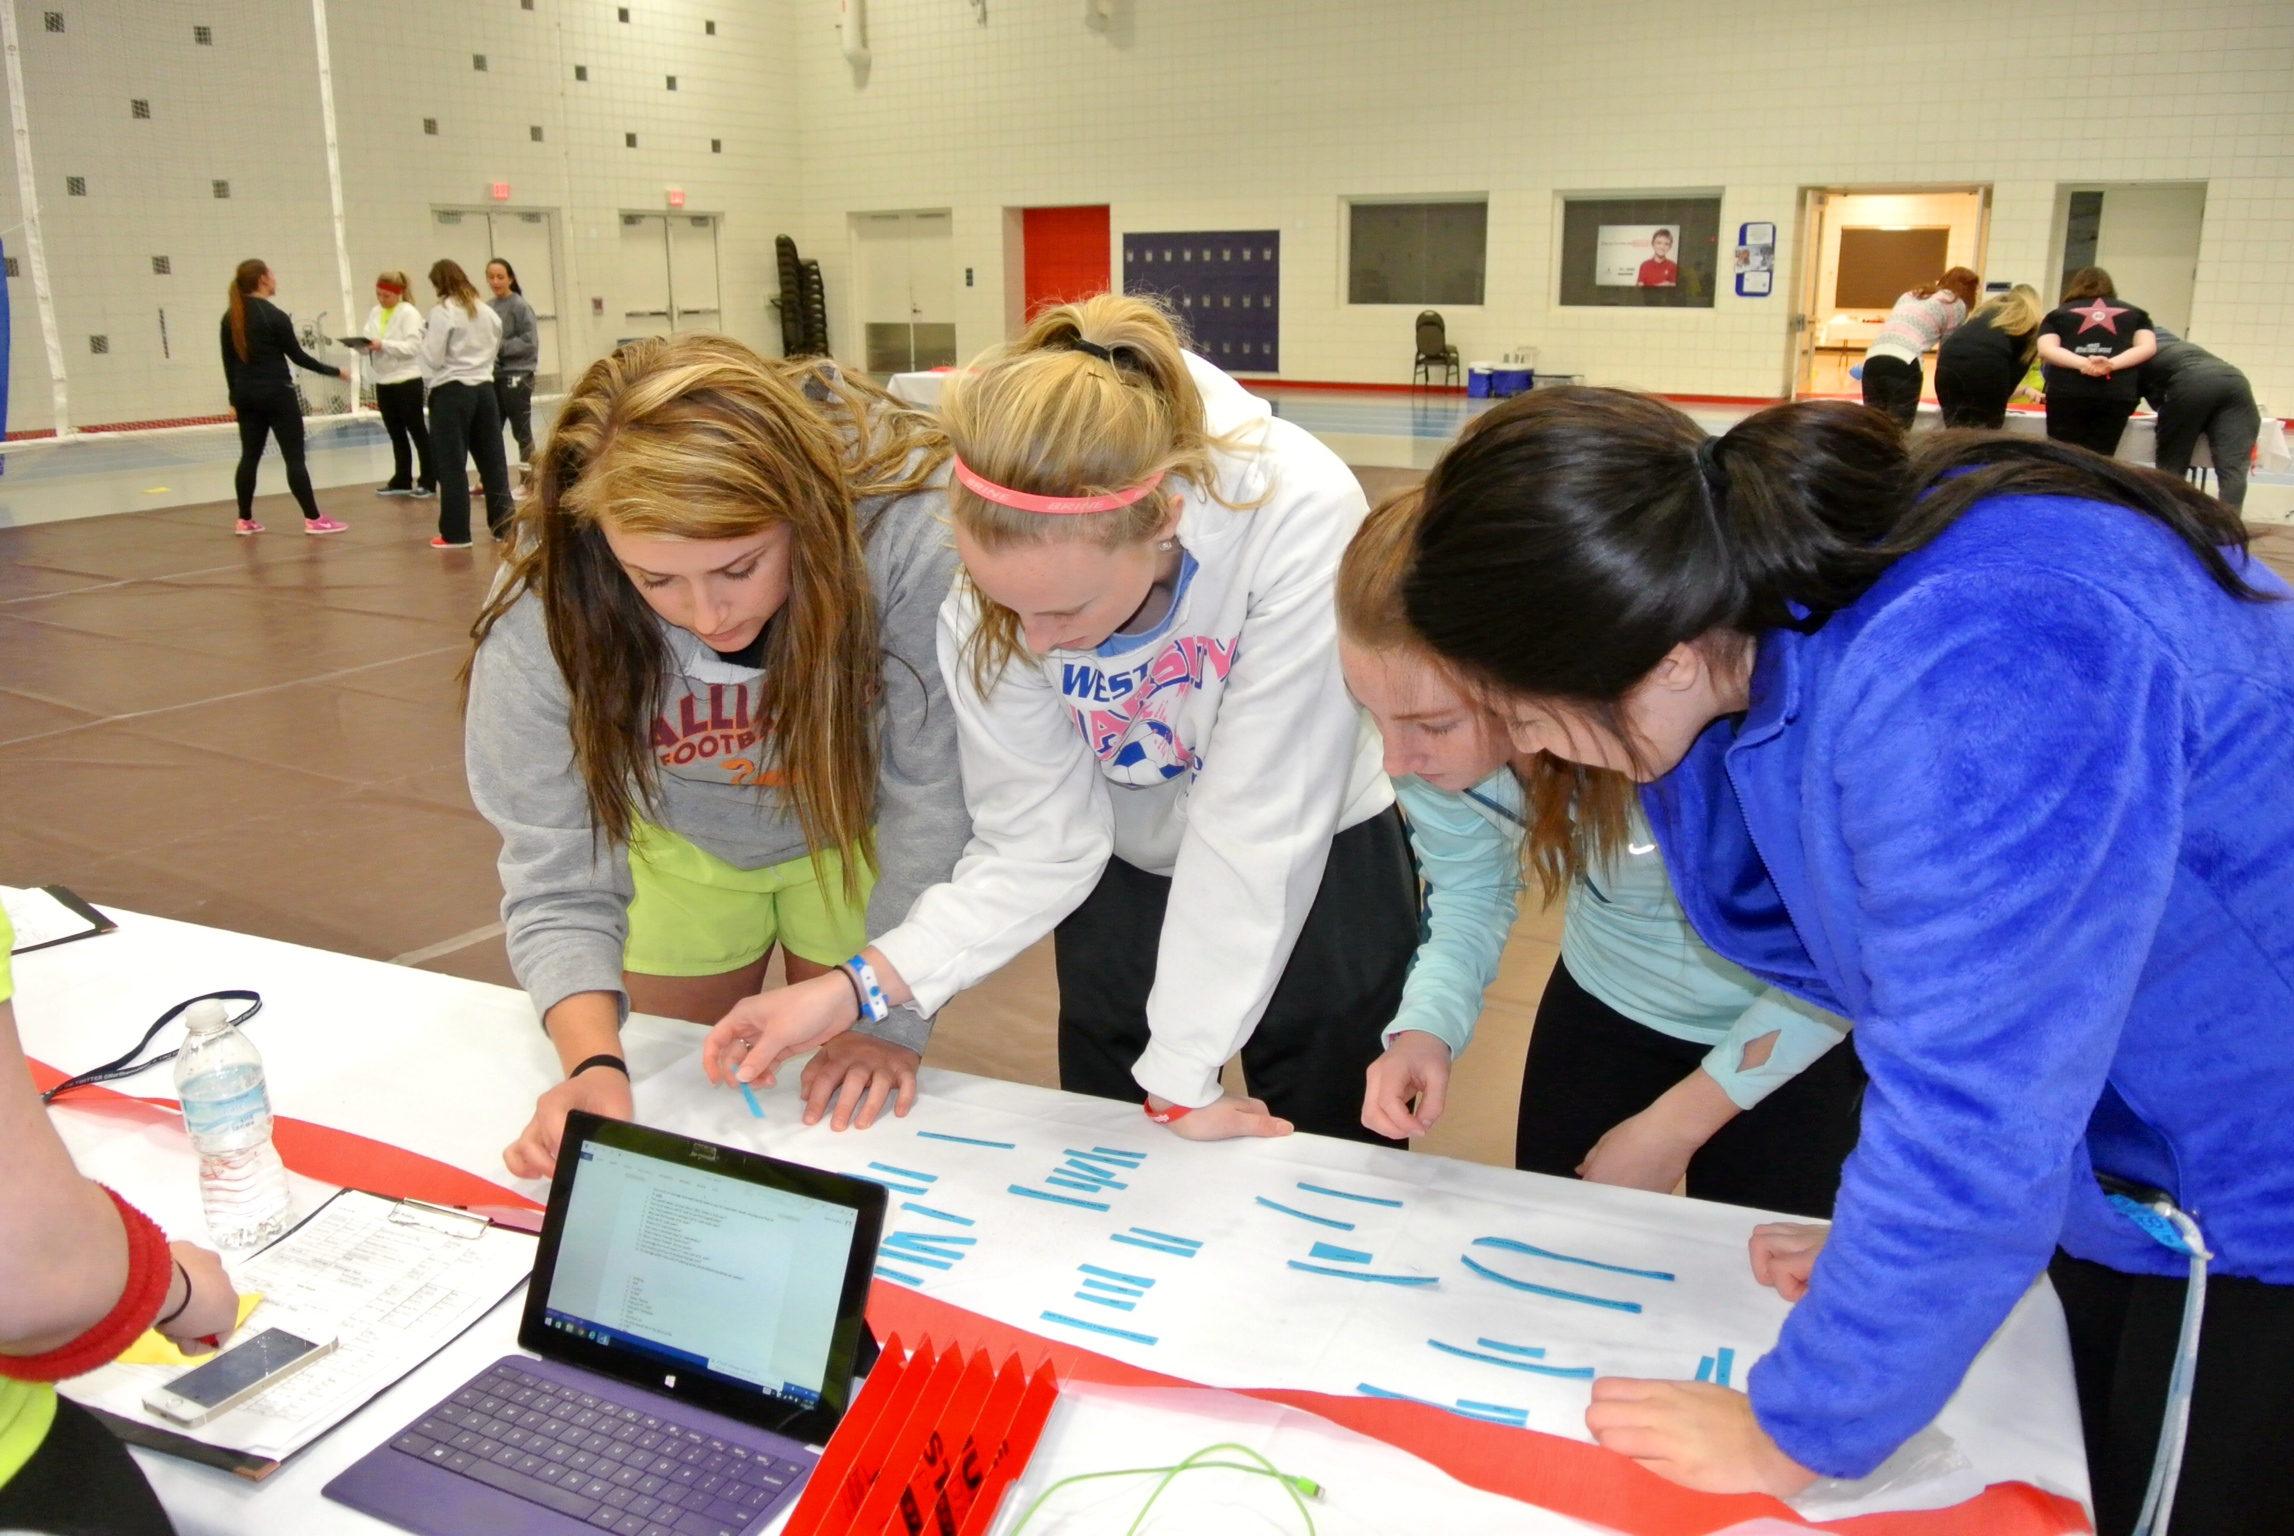 Students-Mckenzie-Gohn-Shannon-Brown-Savannah-King-and-Haley-Rusicka-compete-a-St.-Jude-trivia-challenge-at-the-Up----til-Dawn-event-3-2015.jpeg